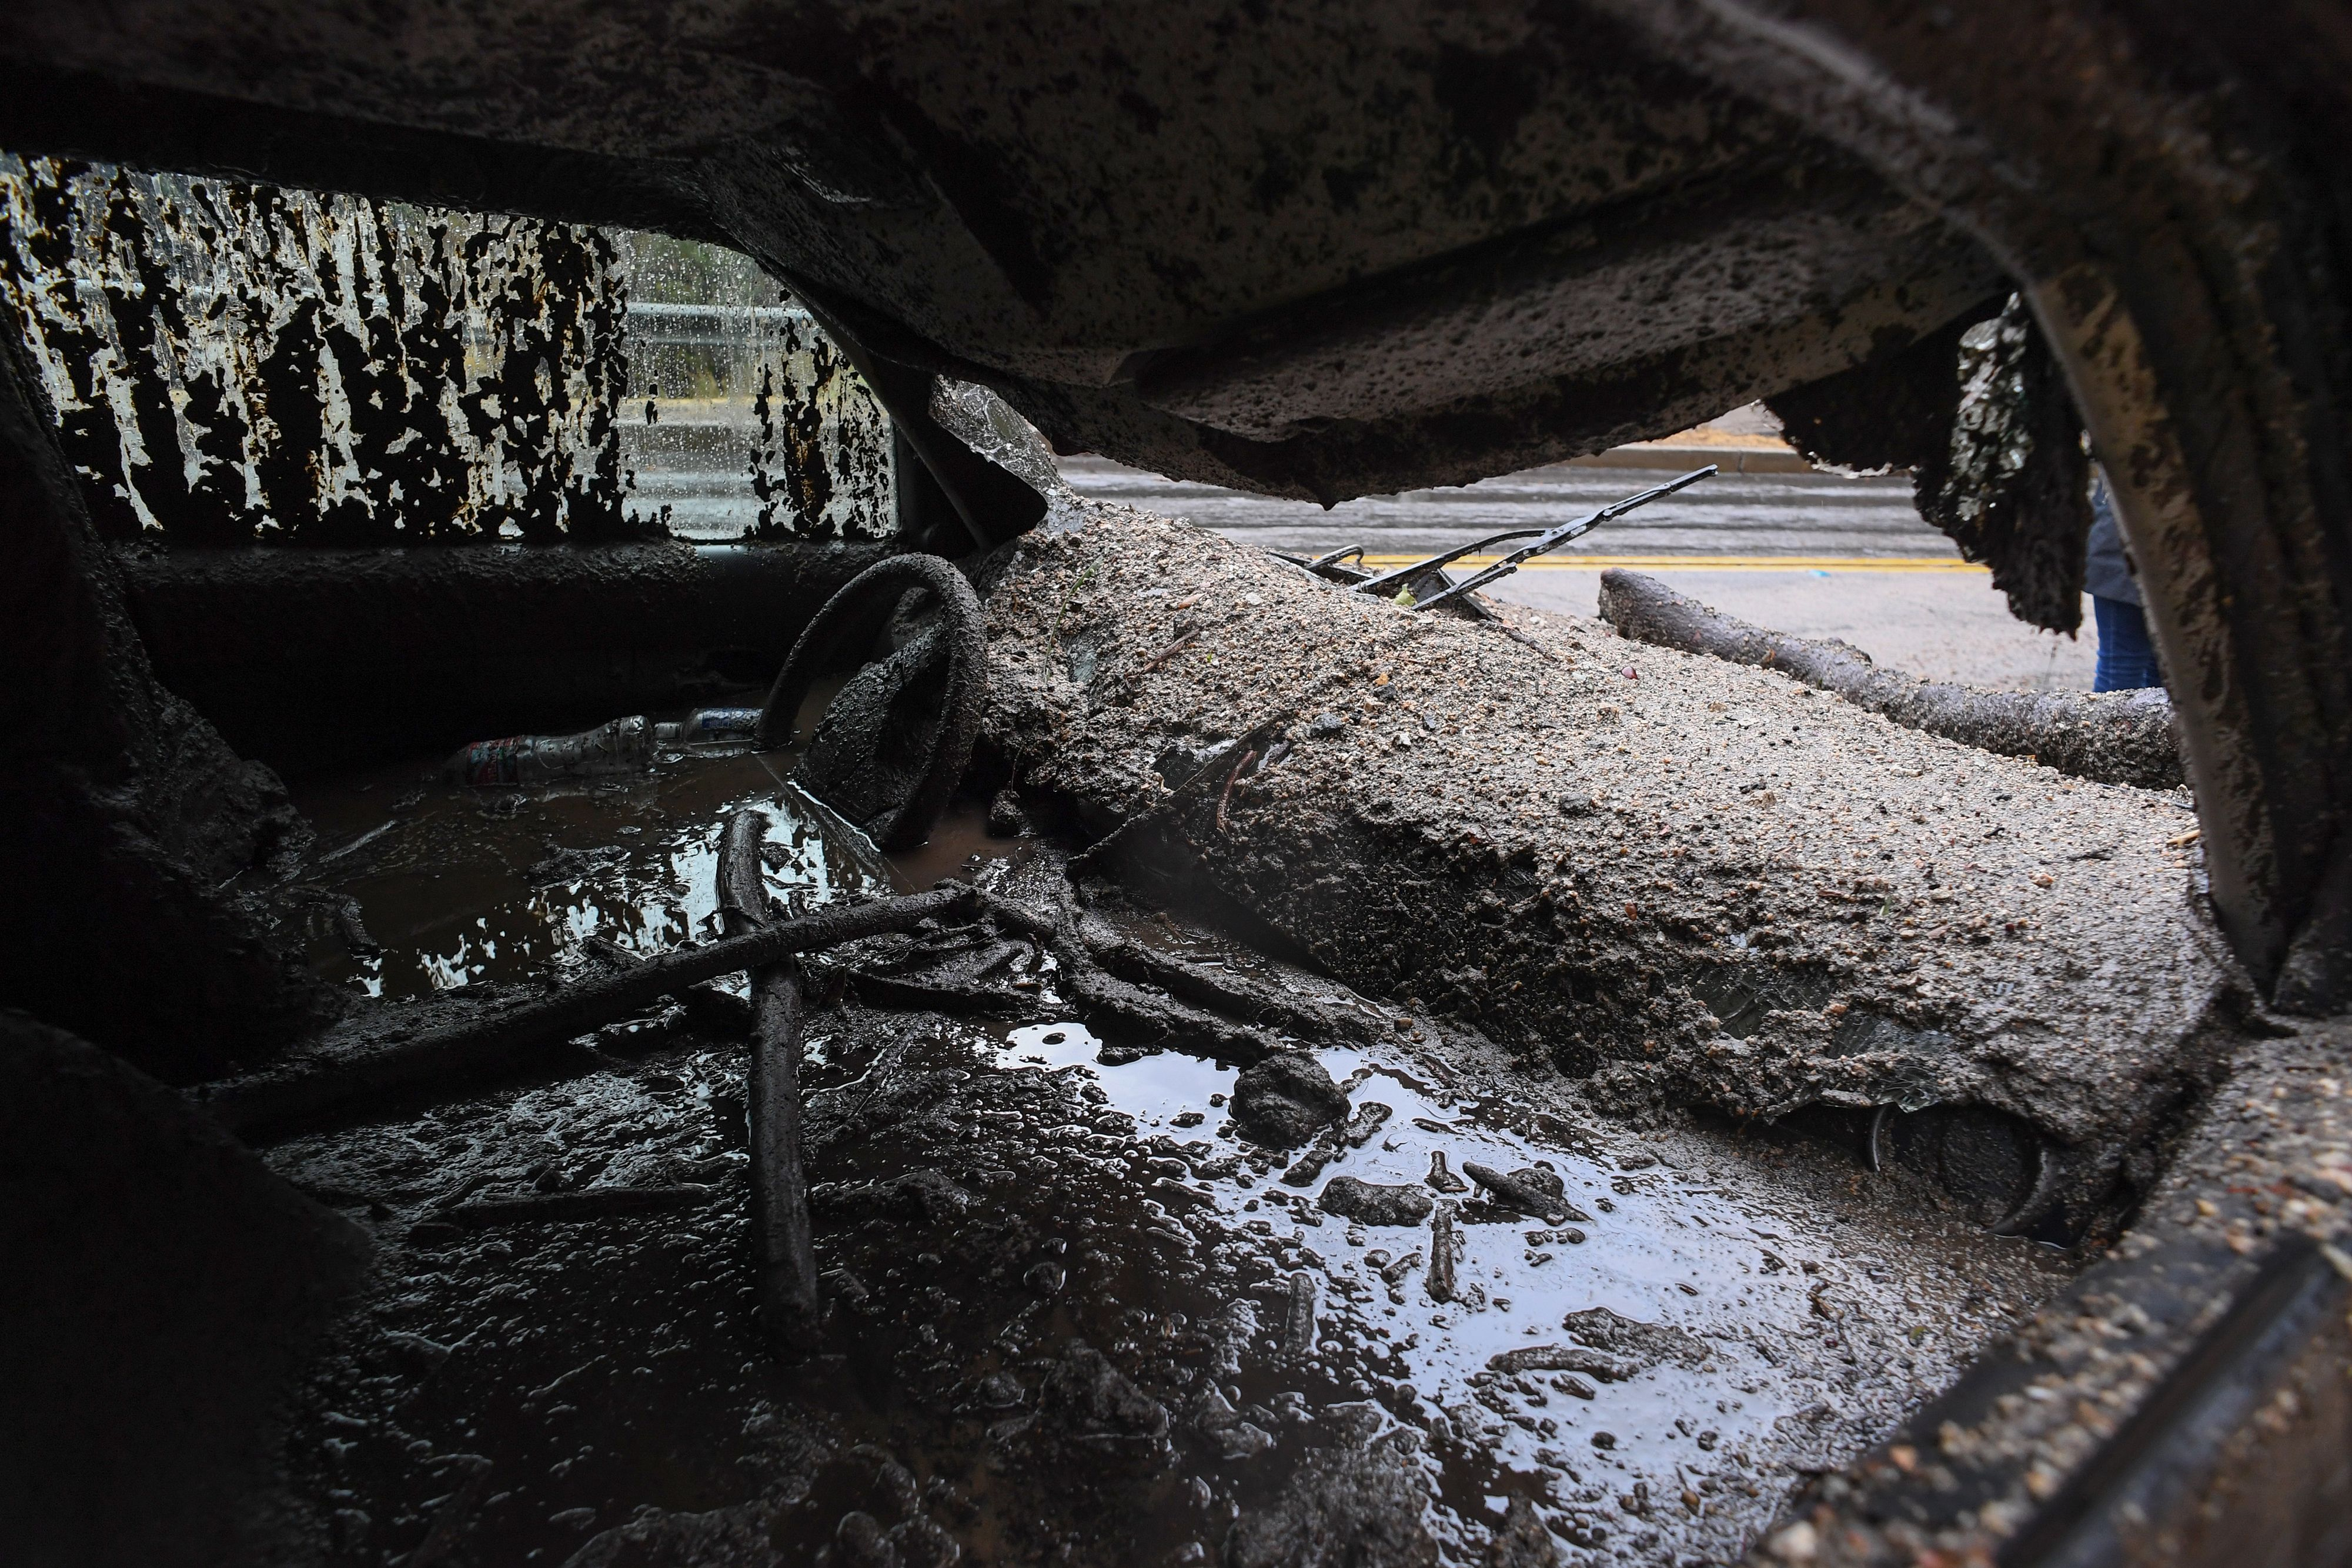 TOPSHOT - Mud fills the interior of a car destroyed in a rain-driven mudslide in a neighborhood under mandatory evacuation in Burbank, California, January 9, 2018.                         Mudslides unleashed by a ferocious storm demolished homes in southern California, authorities said Tuesday. Five people were reported killed.